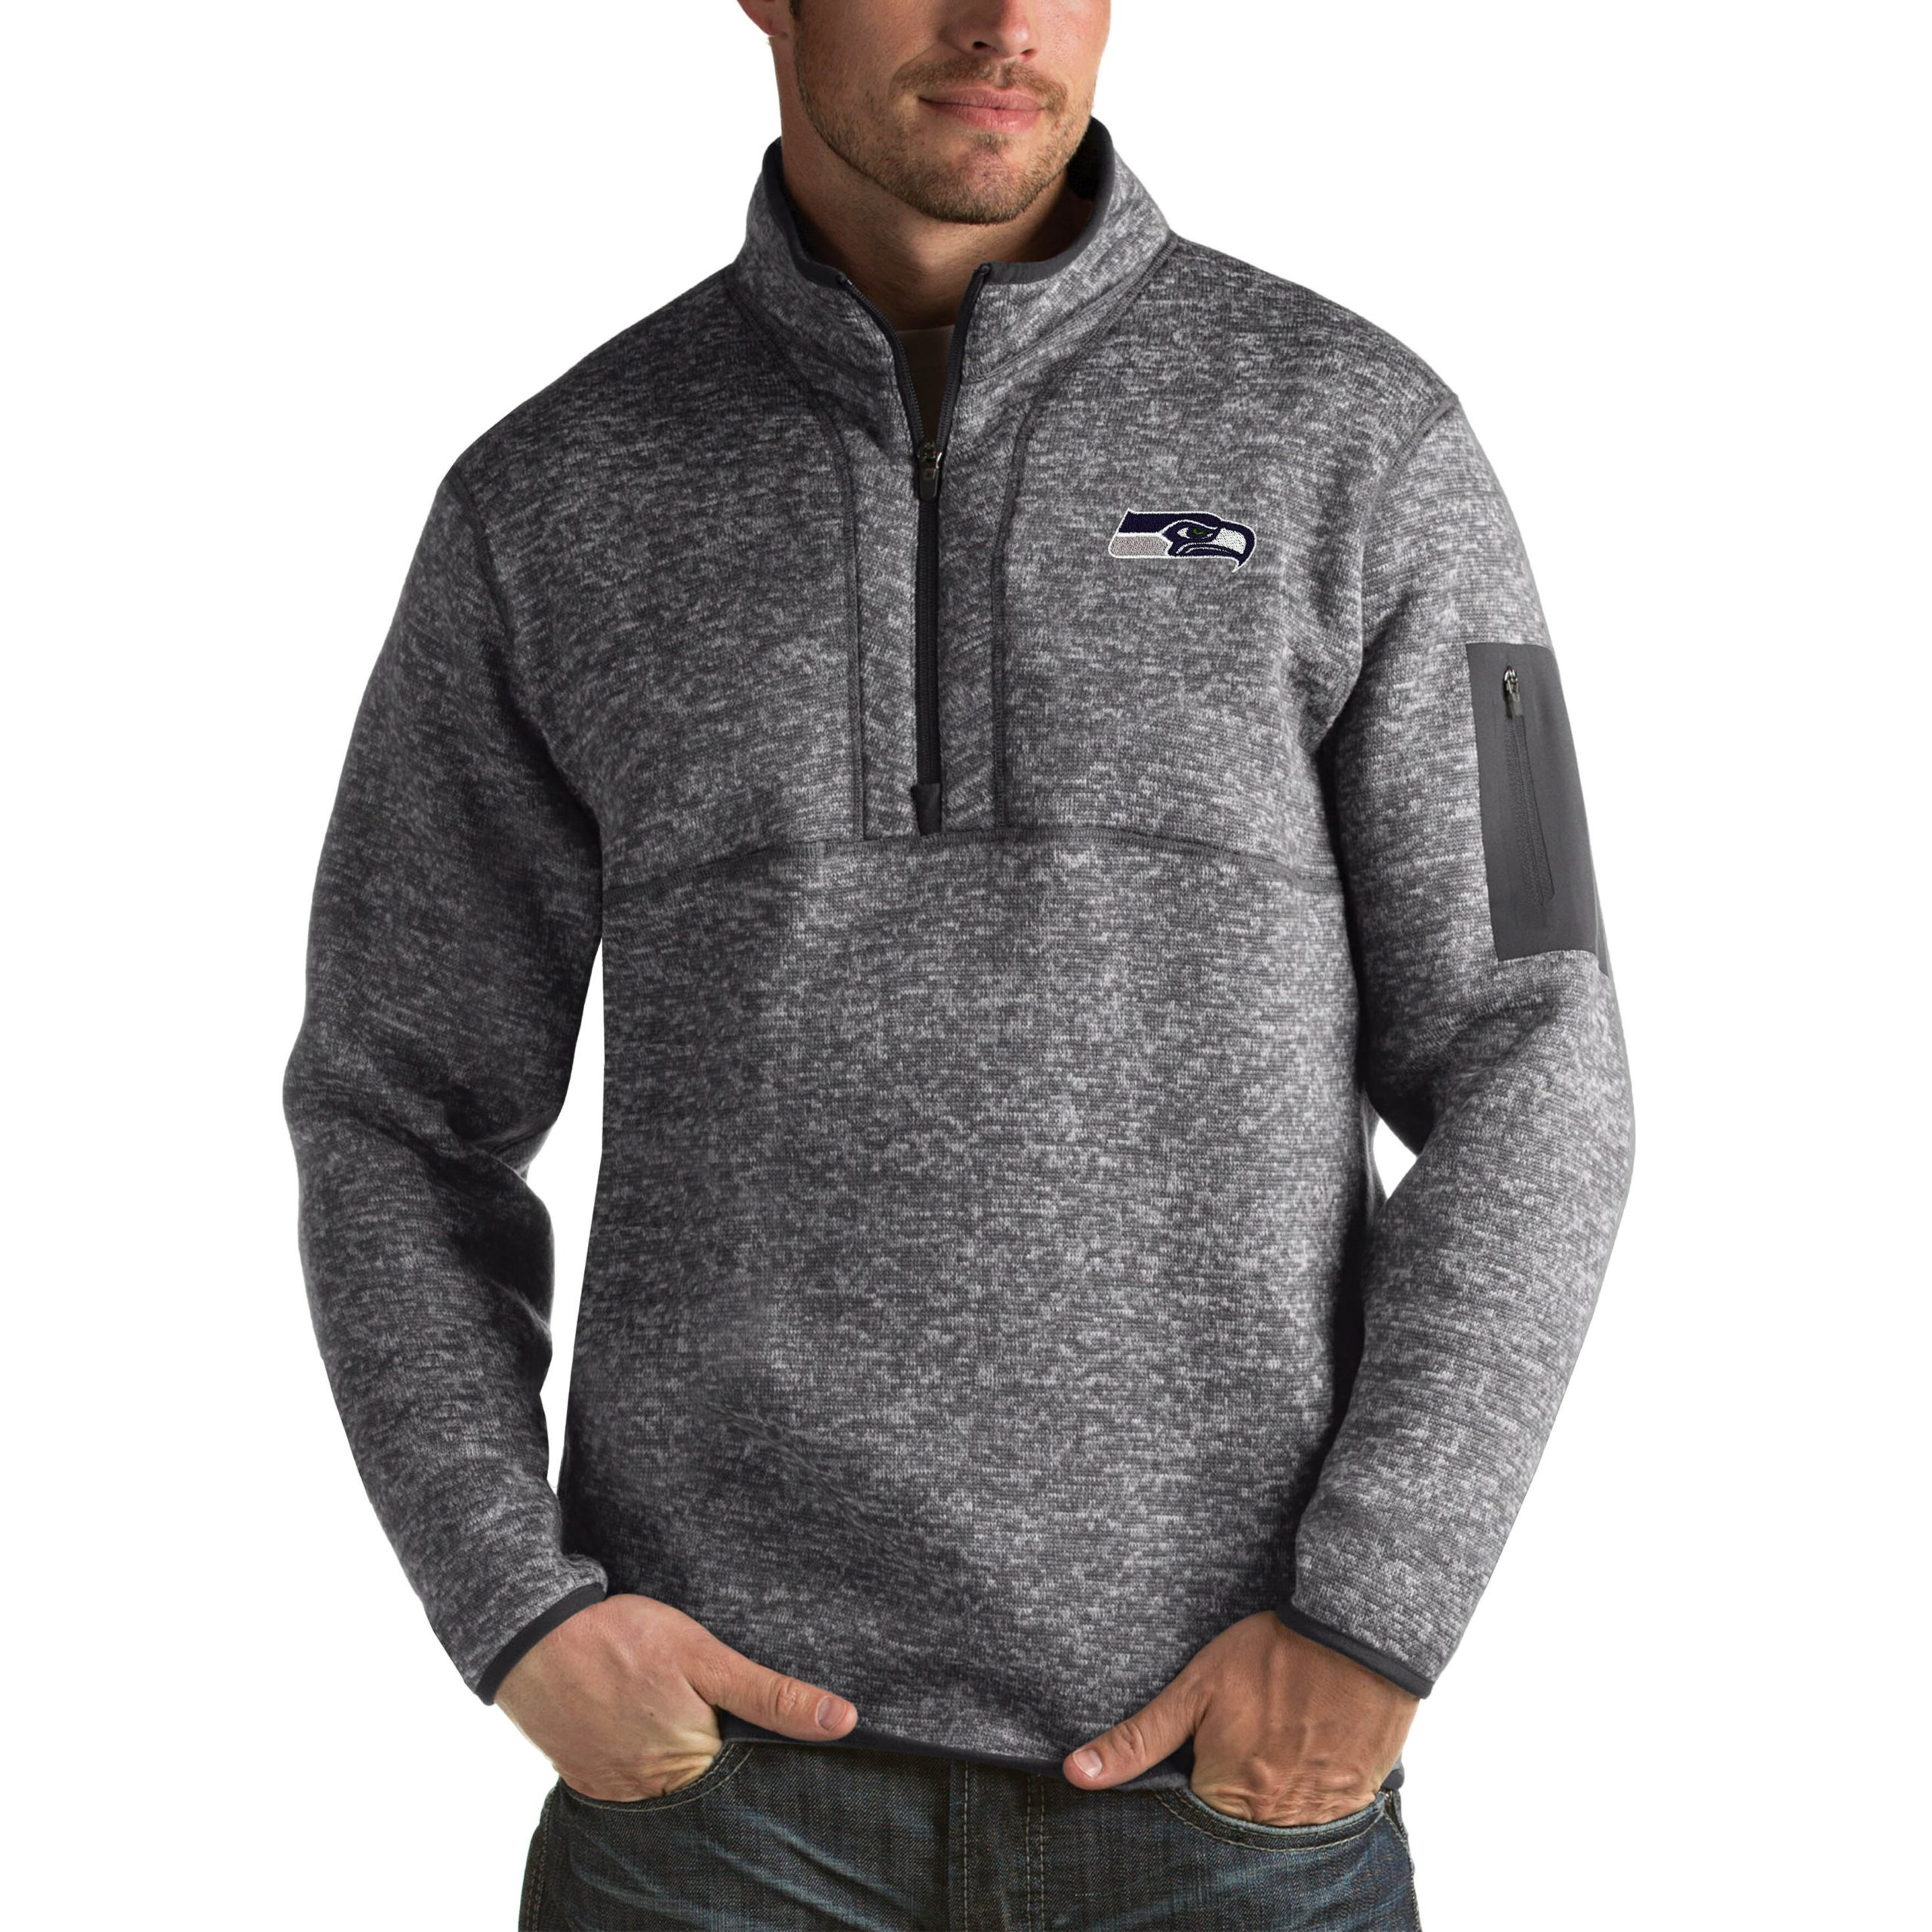 Seattle Seahawks Antigua Fortune Big & Tall Quarter-Zip Pullover Jacket - Charcoal